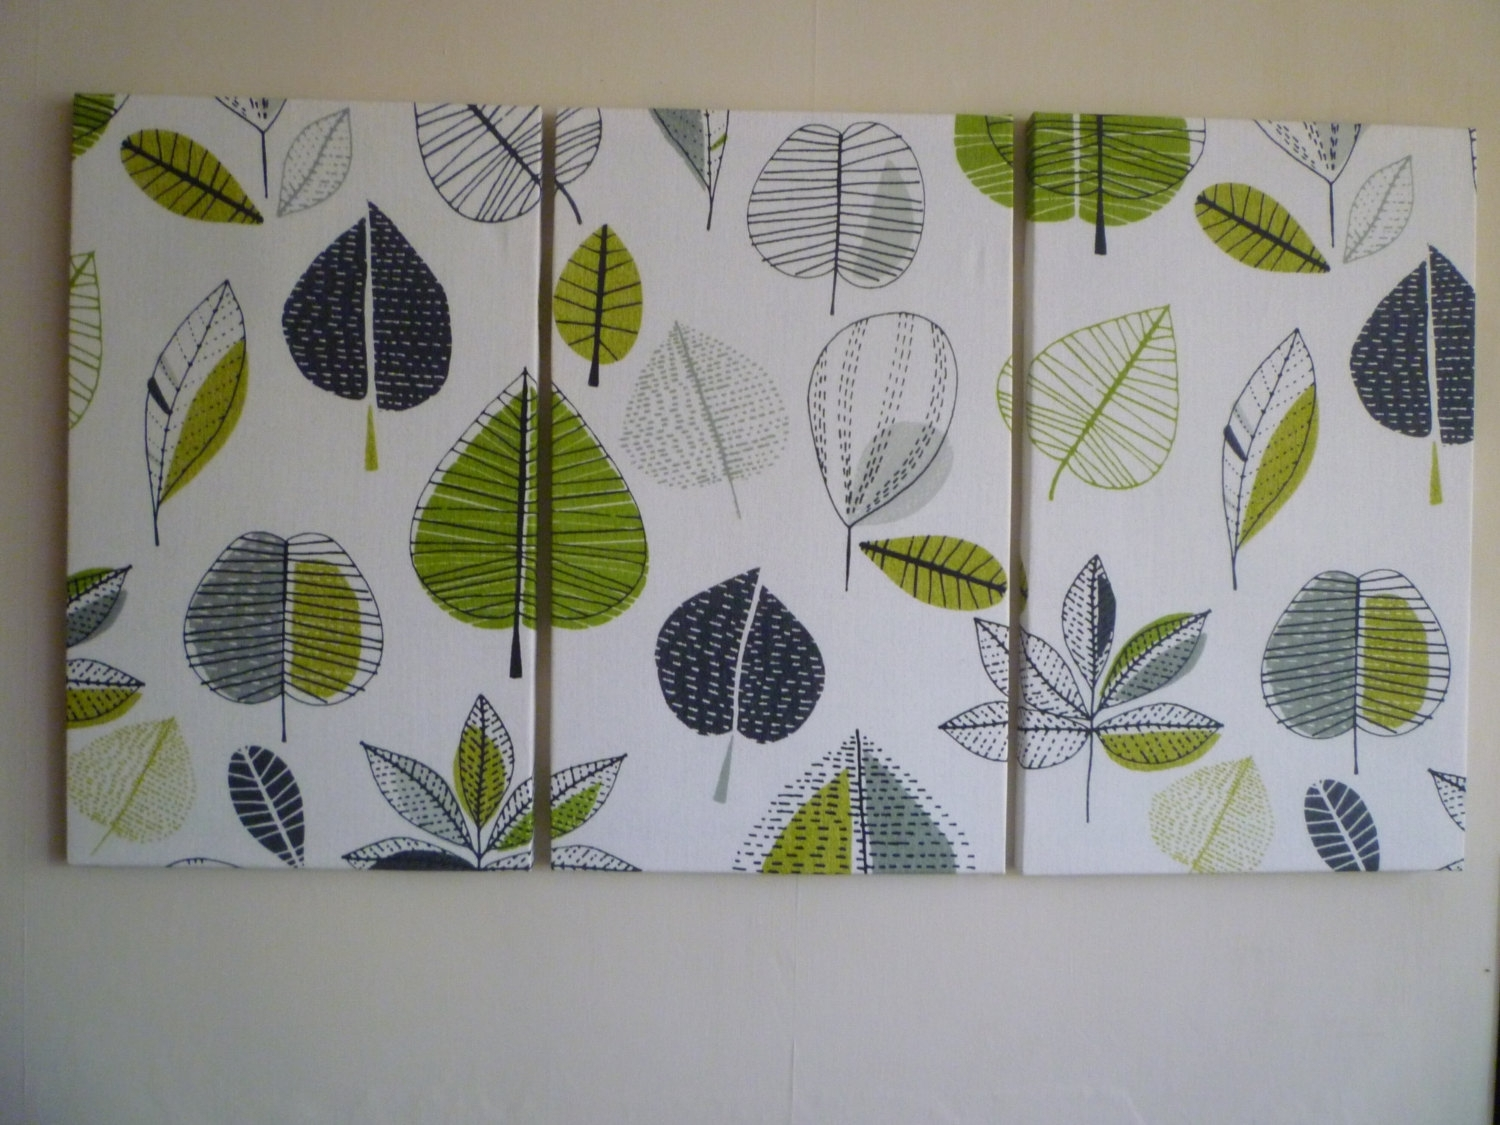 Wall Art Designs: Fabric Wall Art Big Lime Green Fabric Wall Art With Regard To Best And Newest Fabric Wall Art Panels (View 5 of 15)